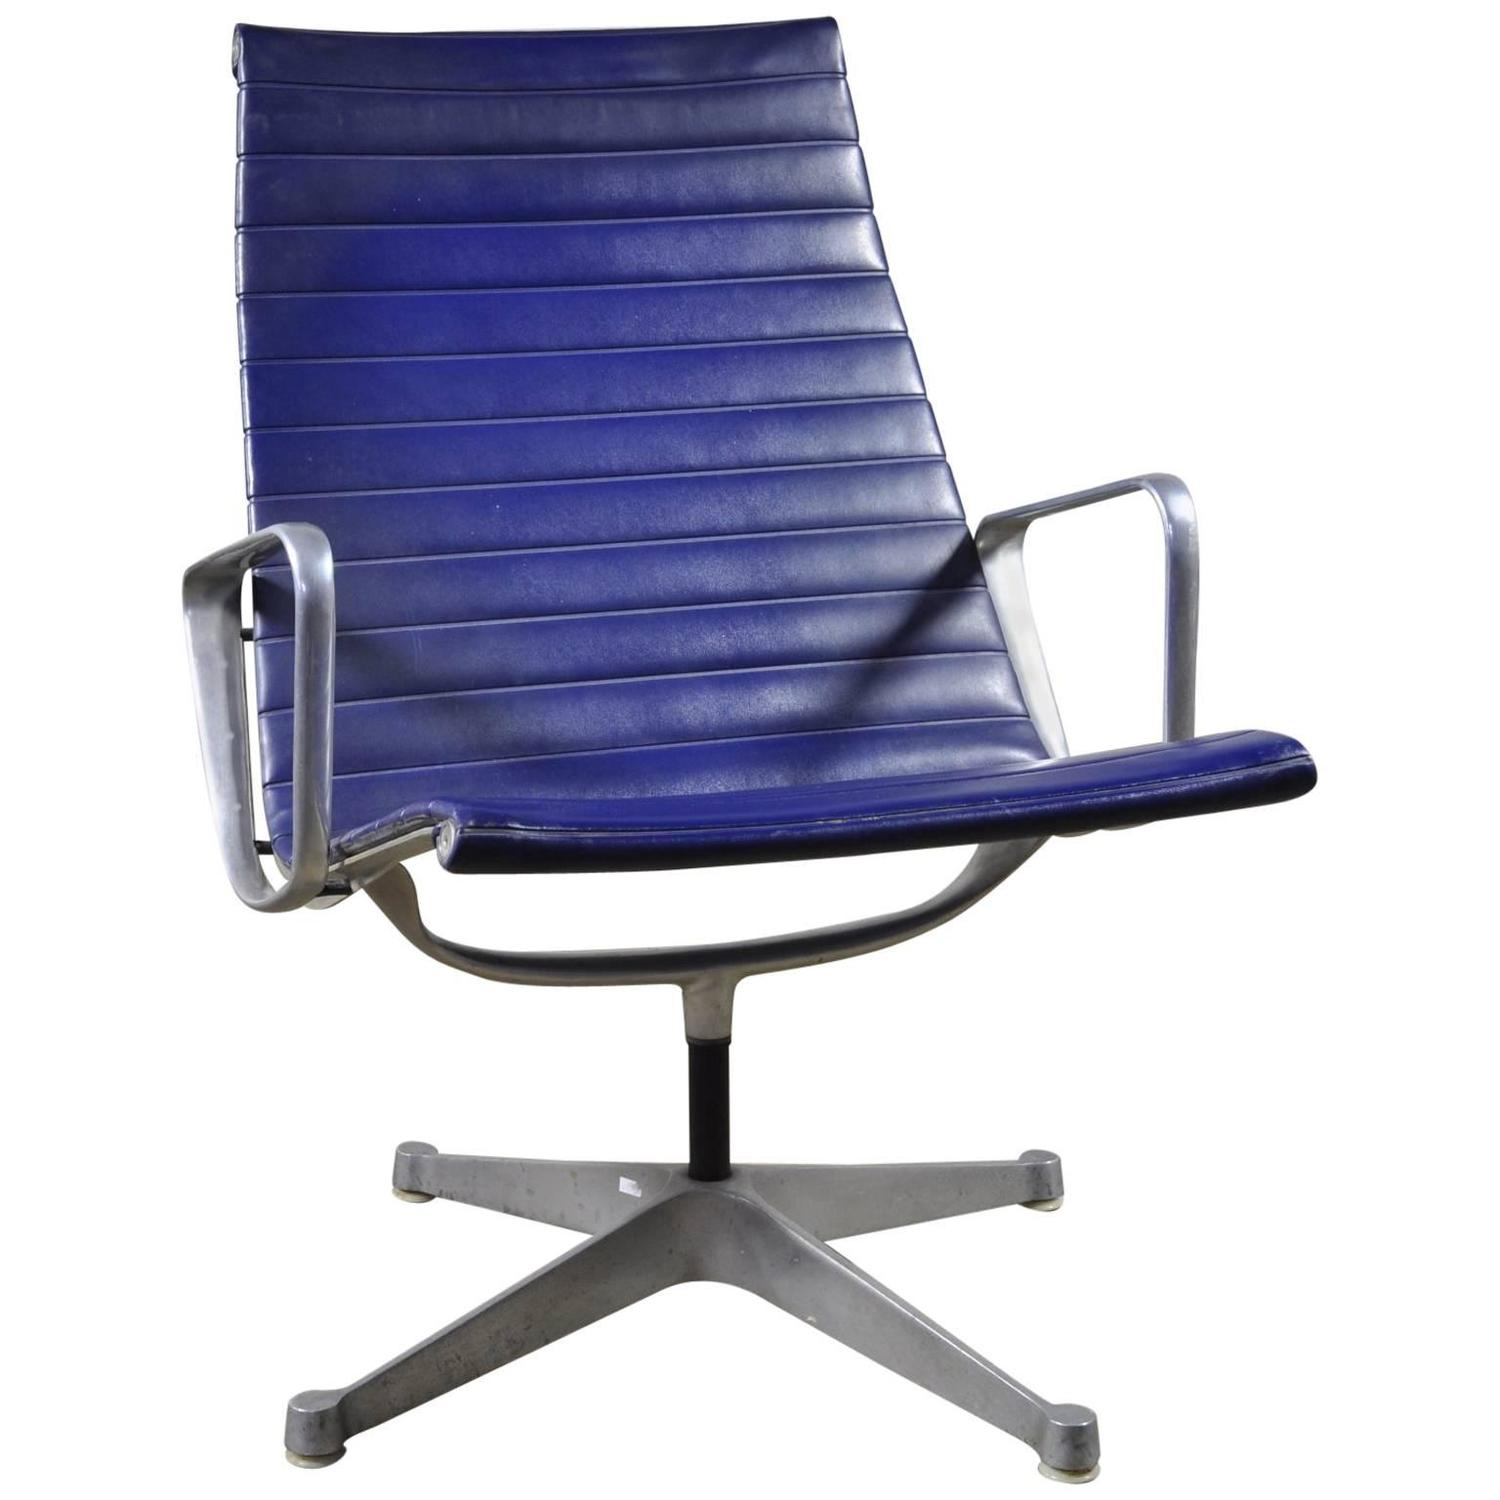 herman miller chairs seattle circle comfy charles and ray eames lounge 83 for sale at 1stdibs blue leather aluminum group chair by